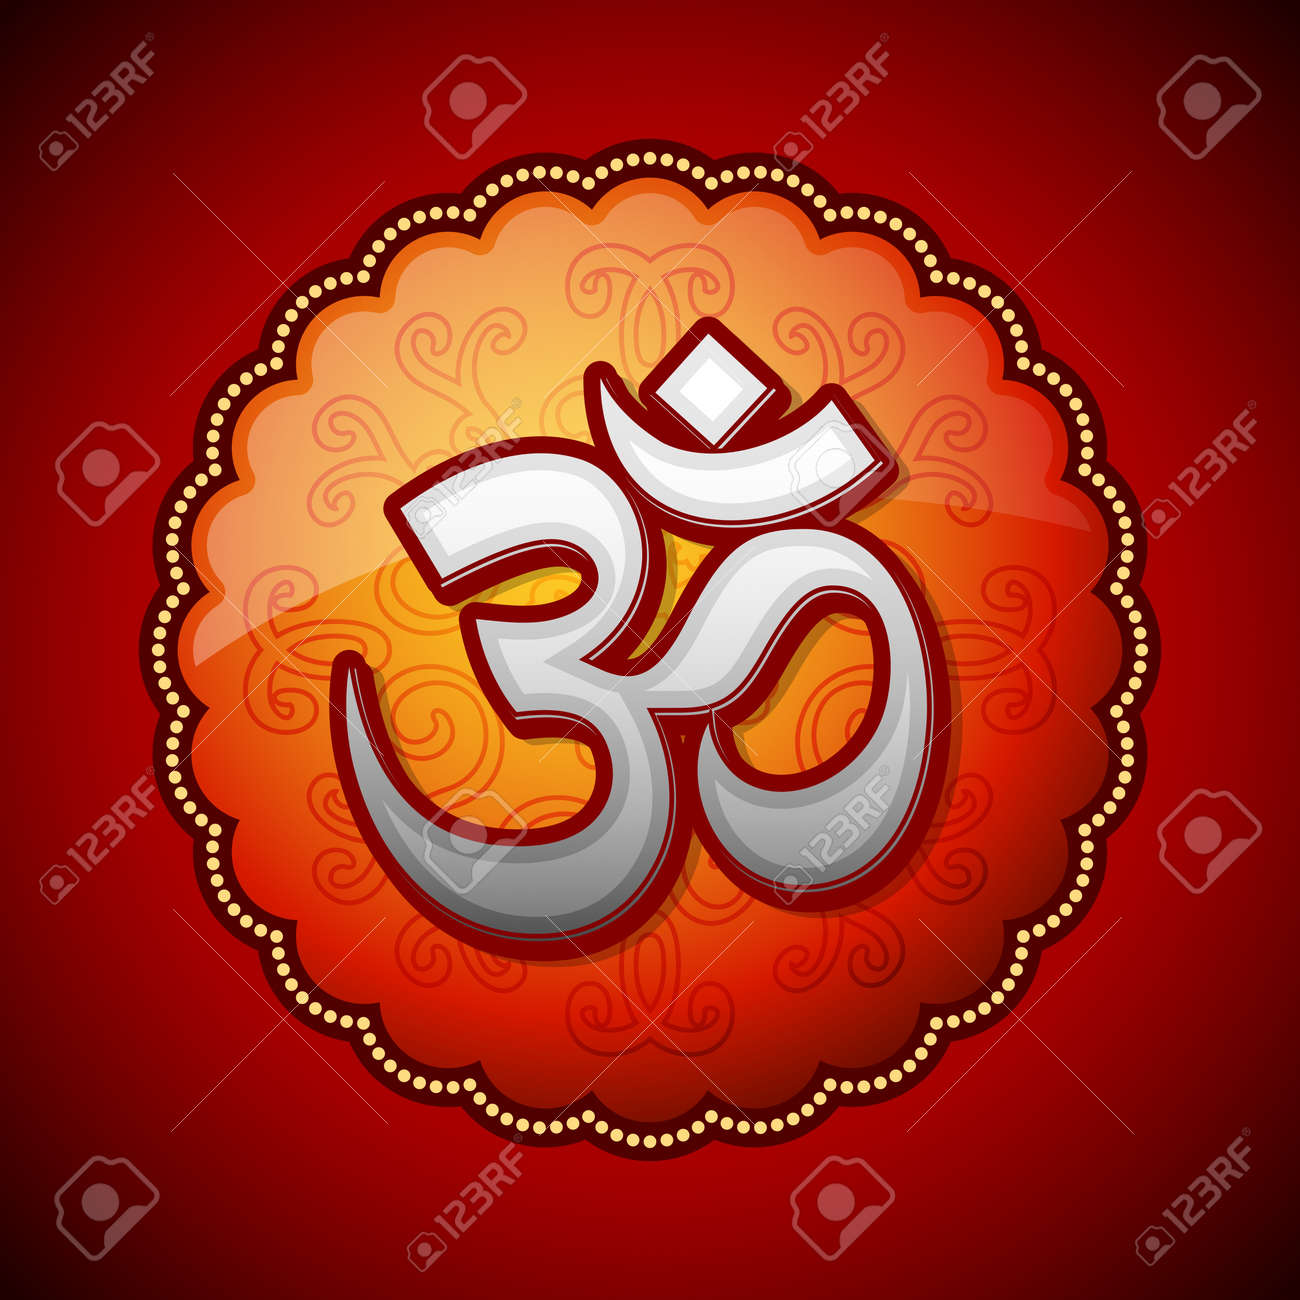 Om Sanskrit Symbol In Round Royalty Free Cliparts Vectors And